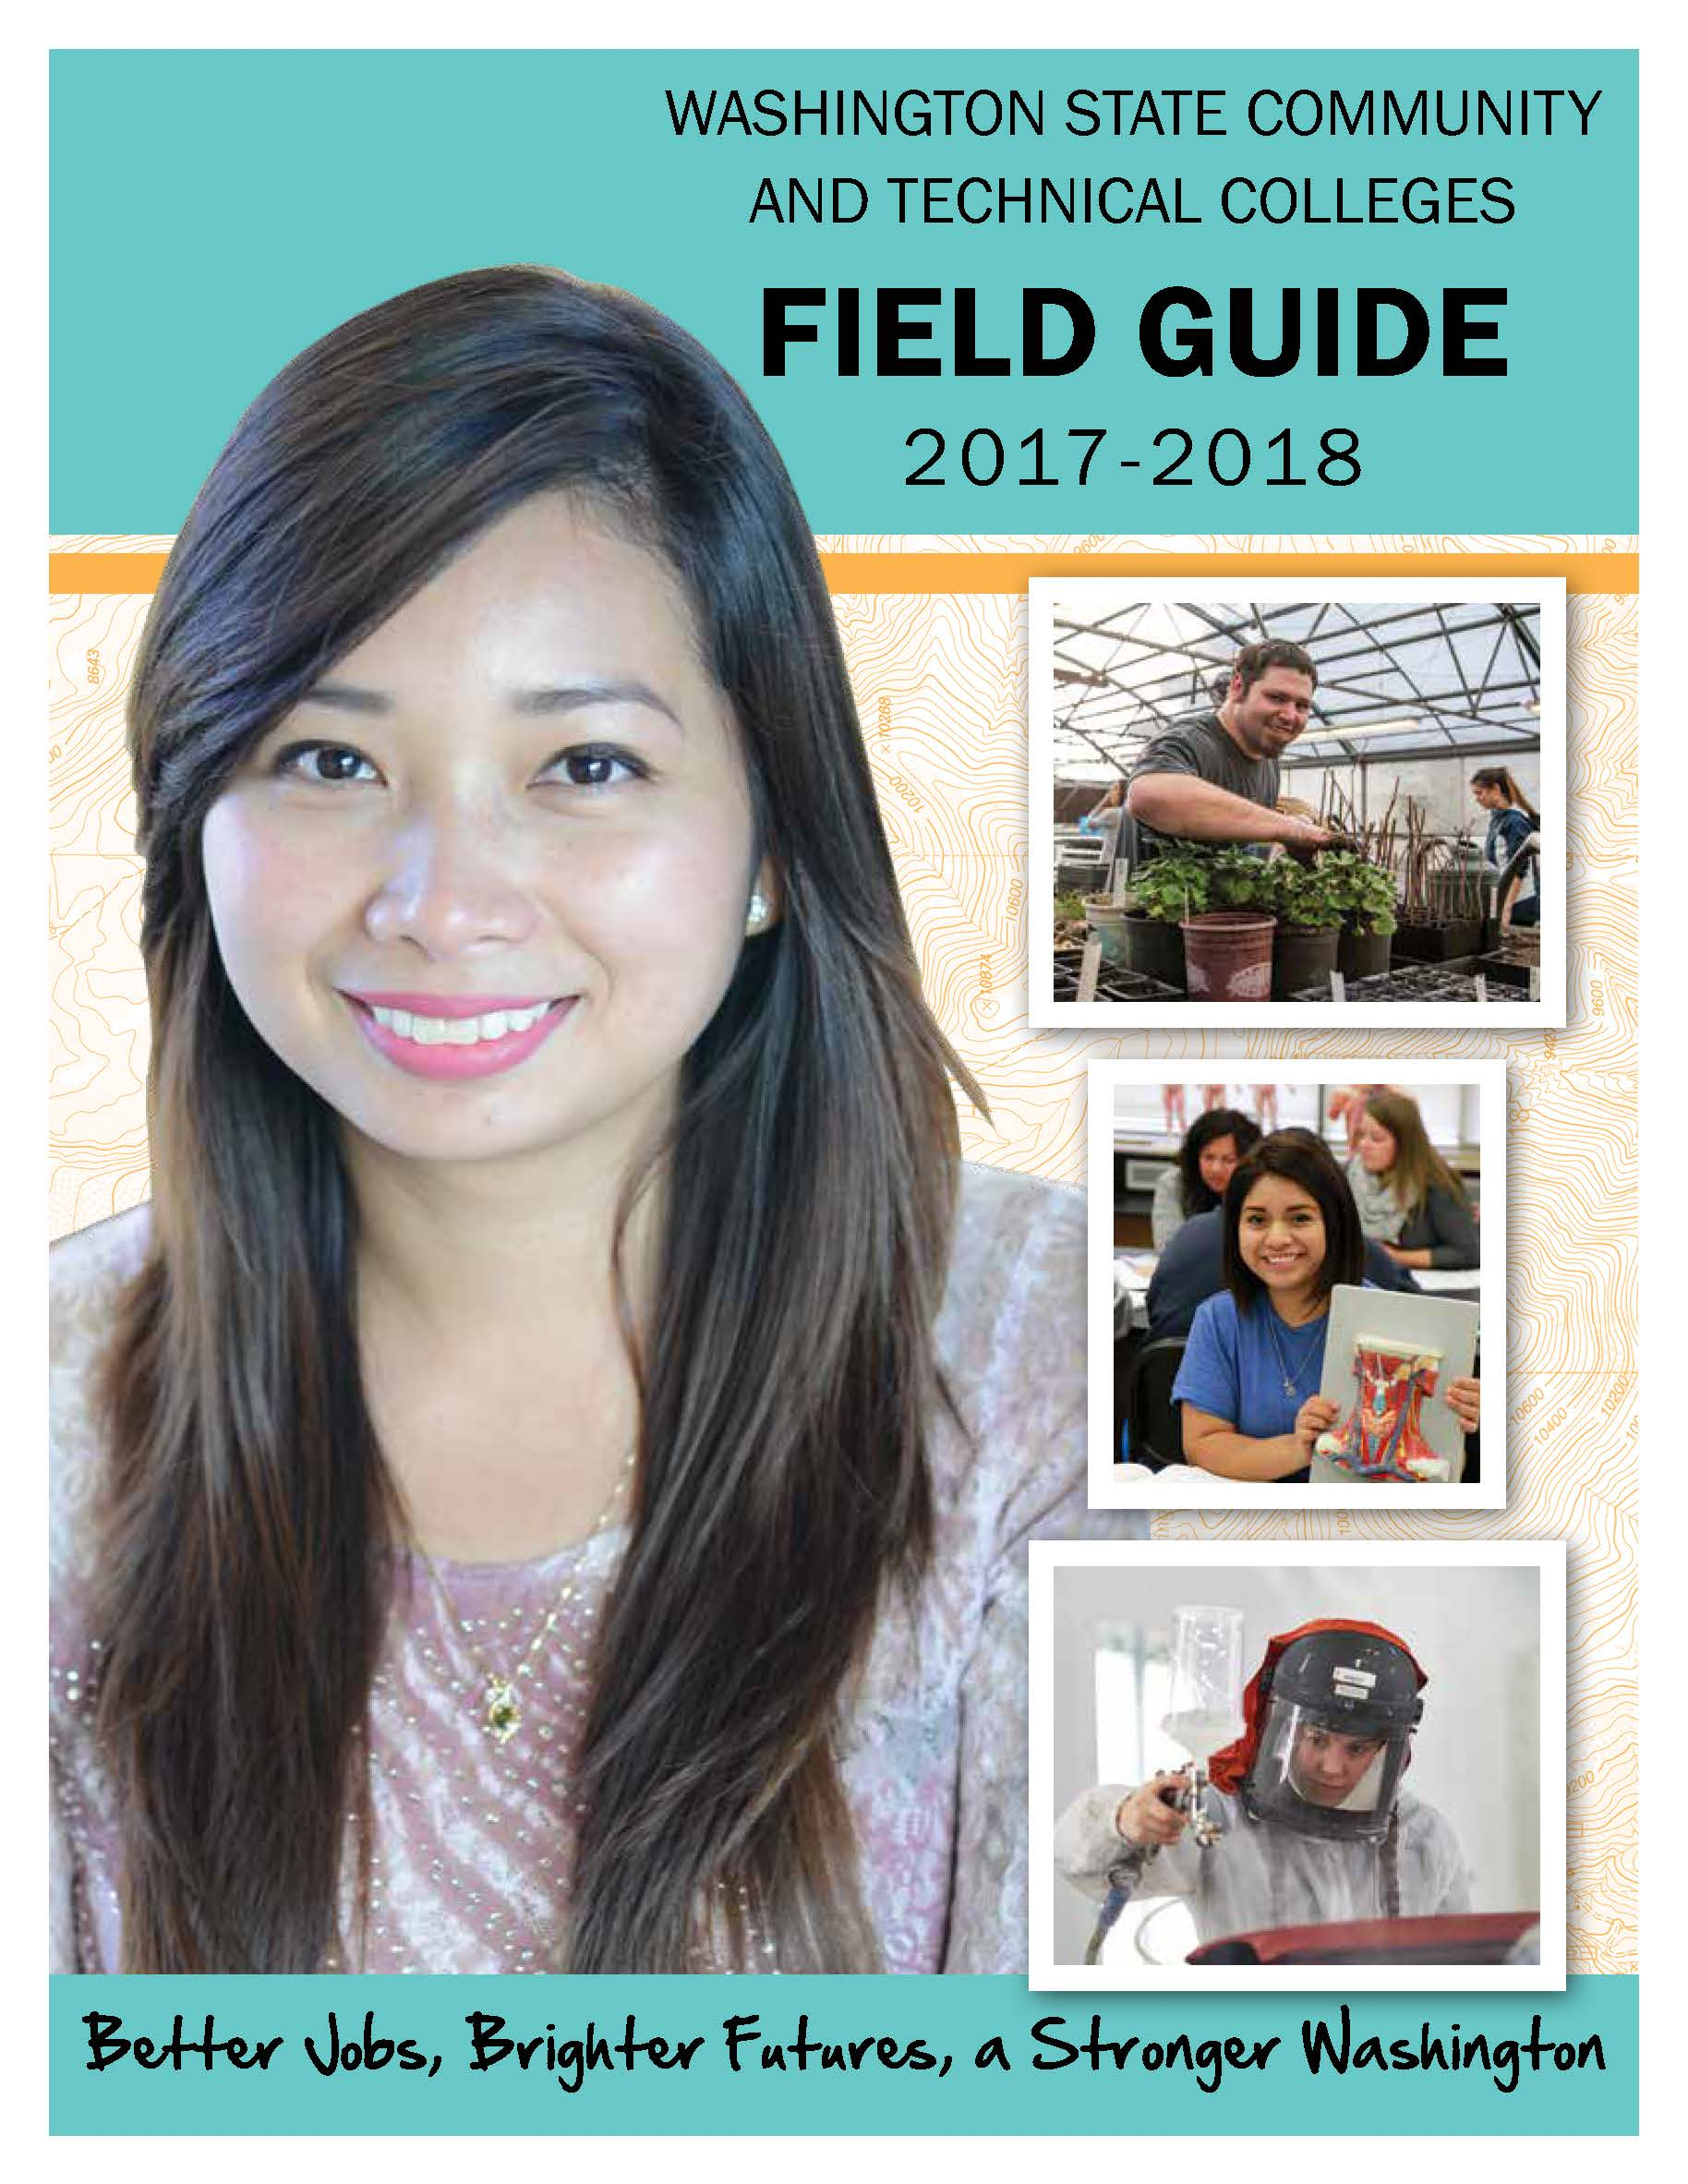 2017-2018 Field Guide cover